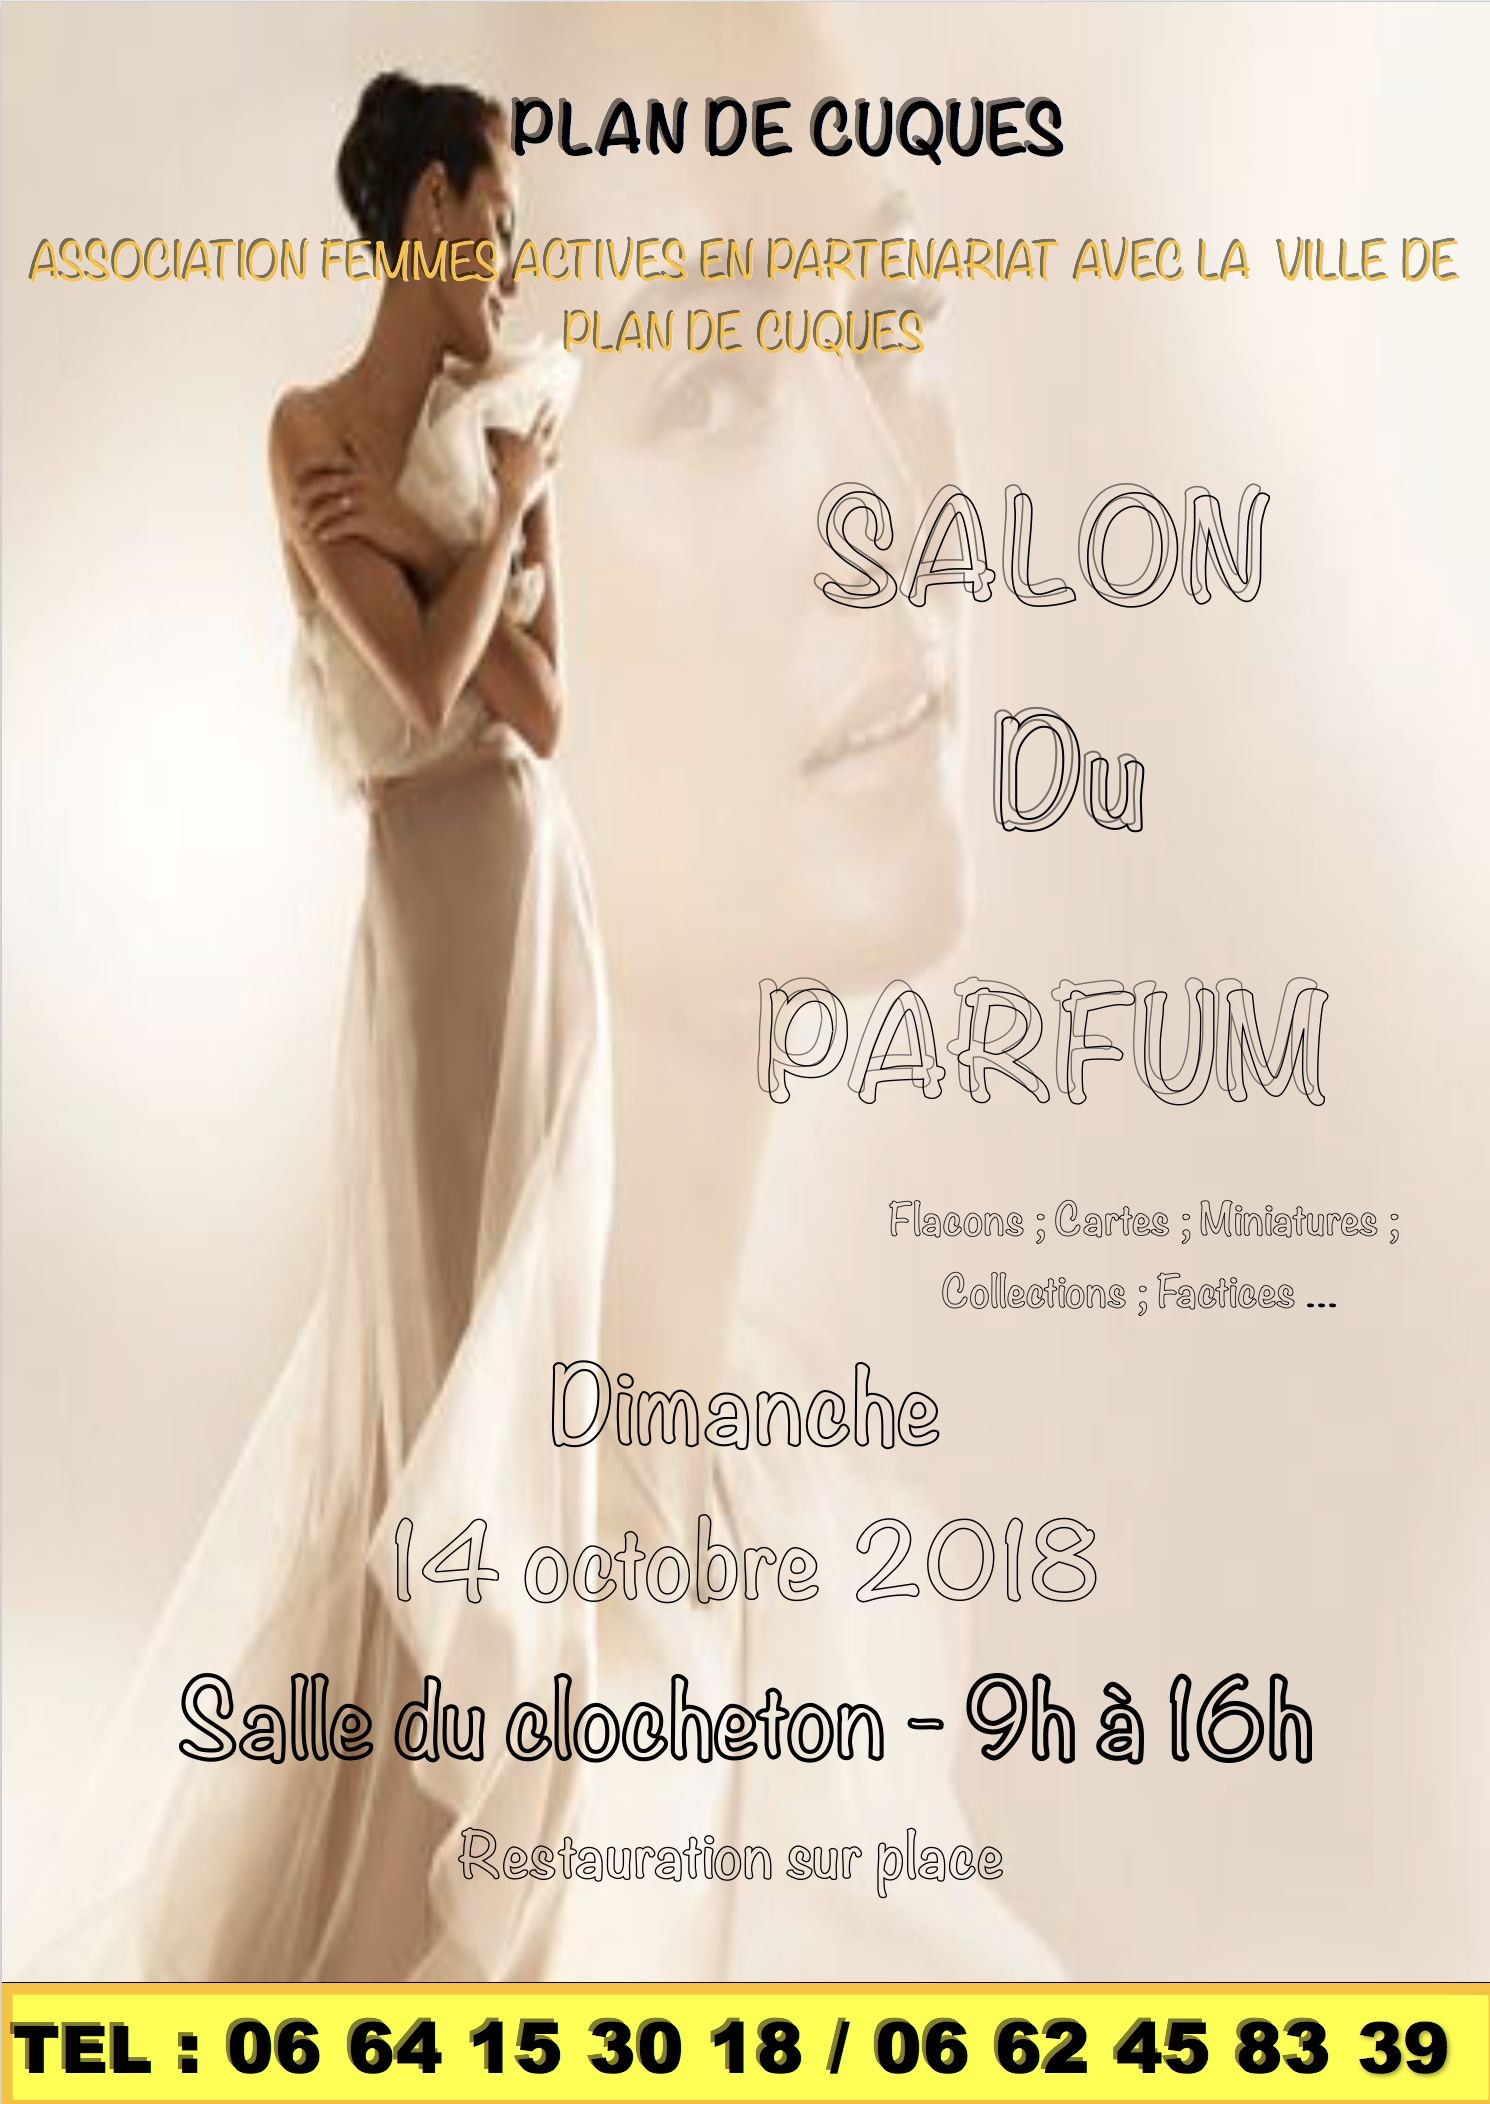 https://i1.wp.com/toutenparfum.files.wordpress.com/2018/05/plan-de-cuques-affiche.jpeg?ssl=1&w